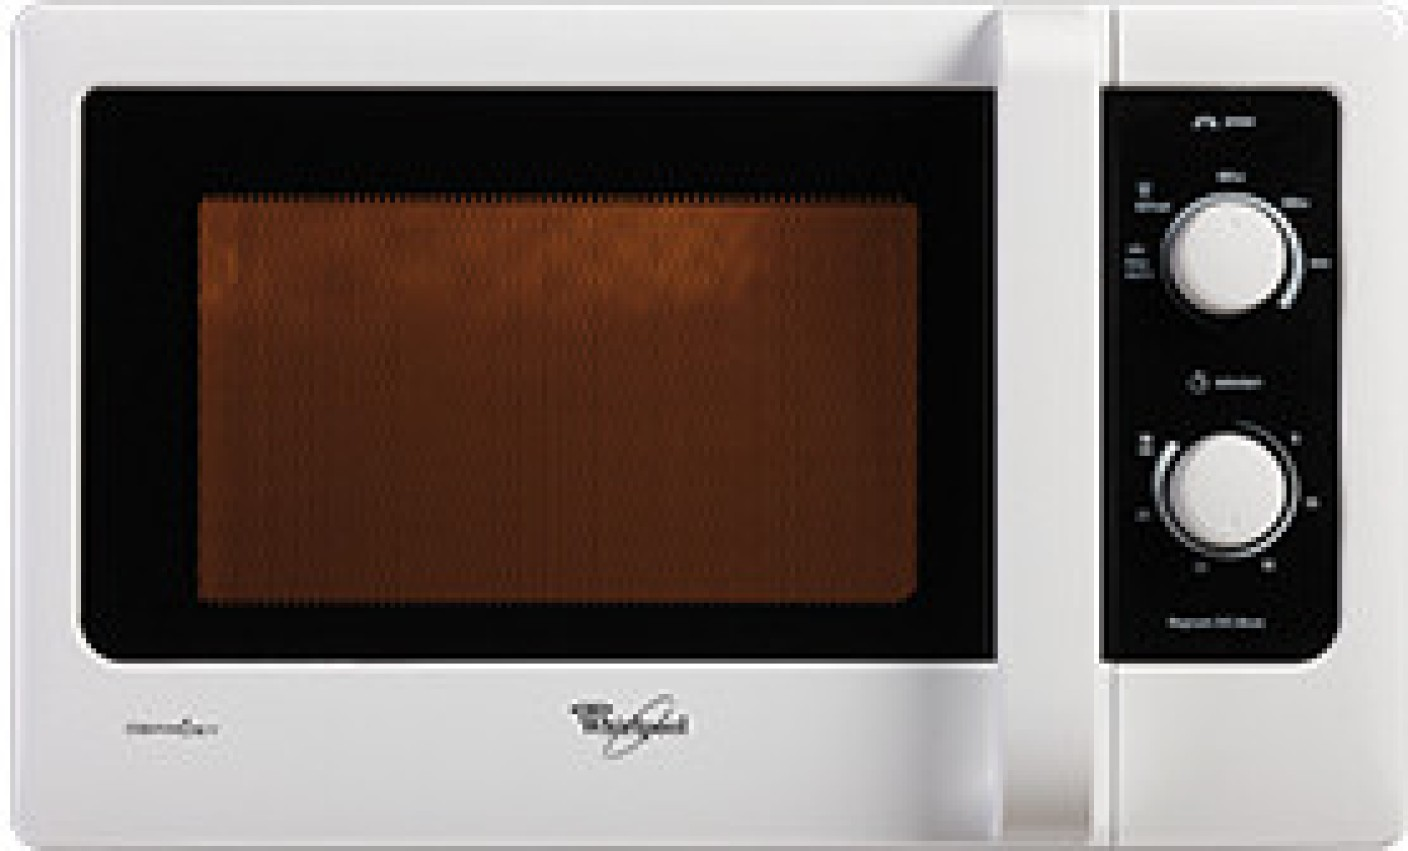 whirlpool 20 l grill microwave oven grill. Black Bedroom Furniture Sets. Home Design Ideas